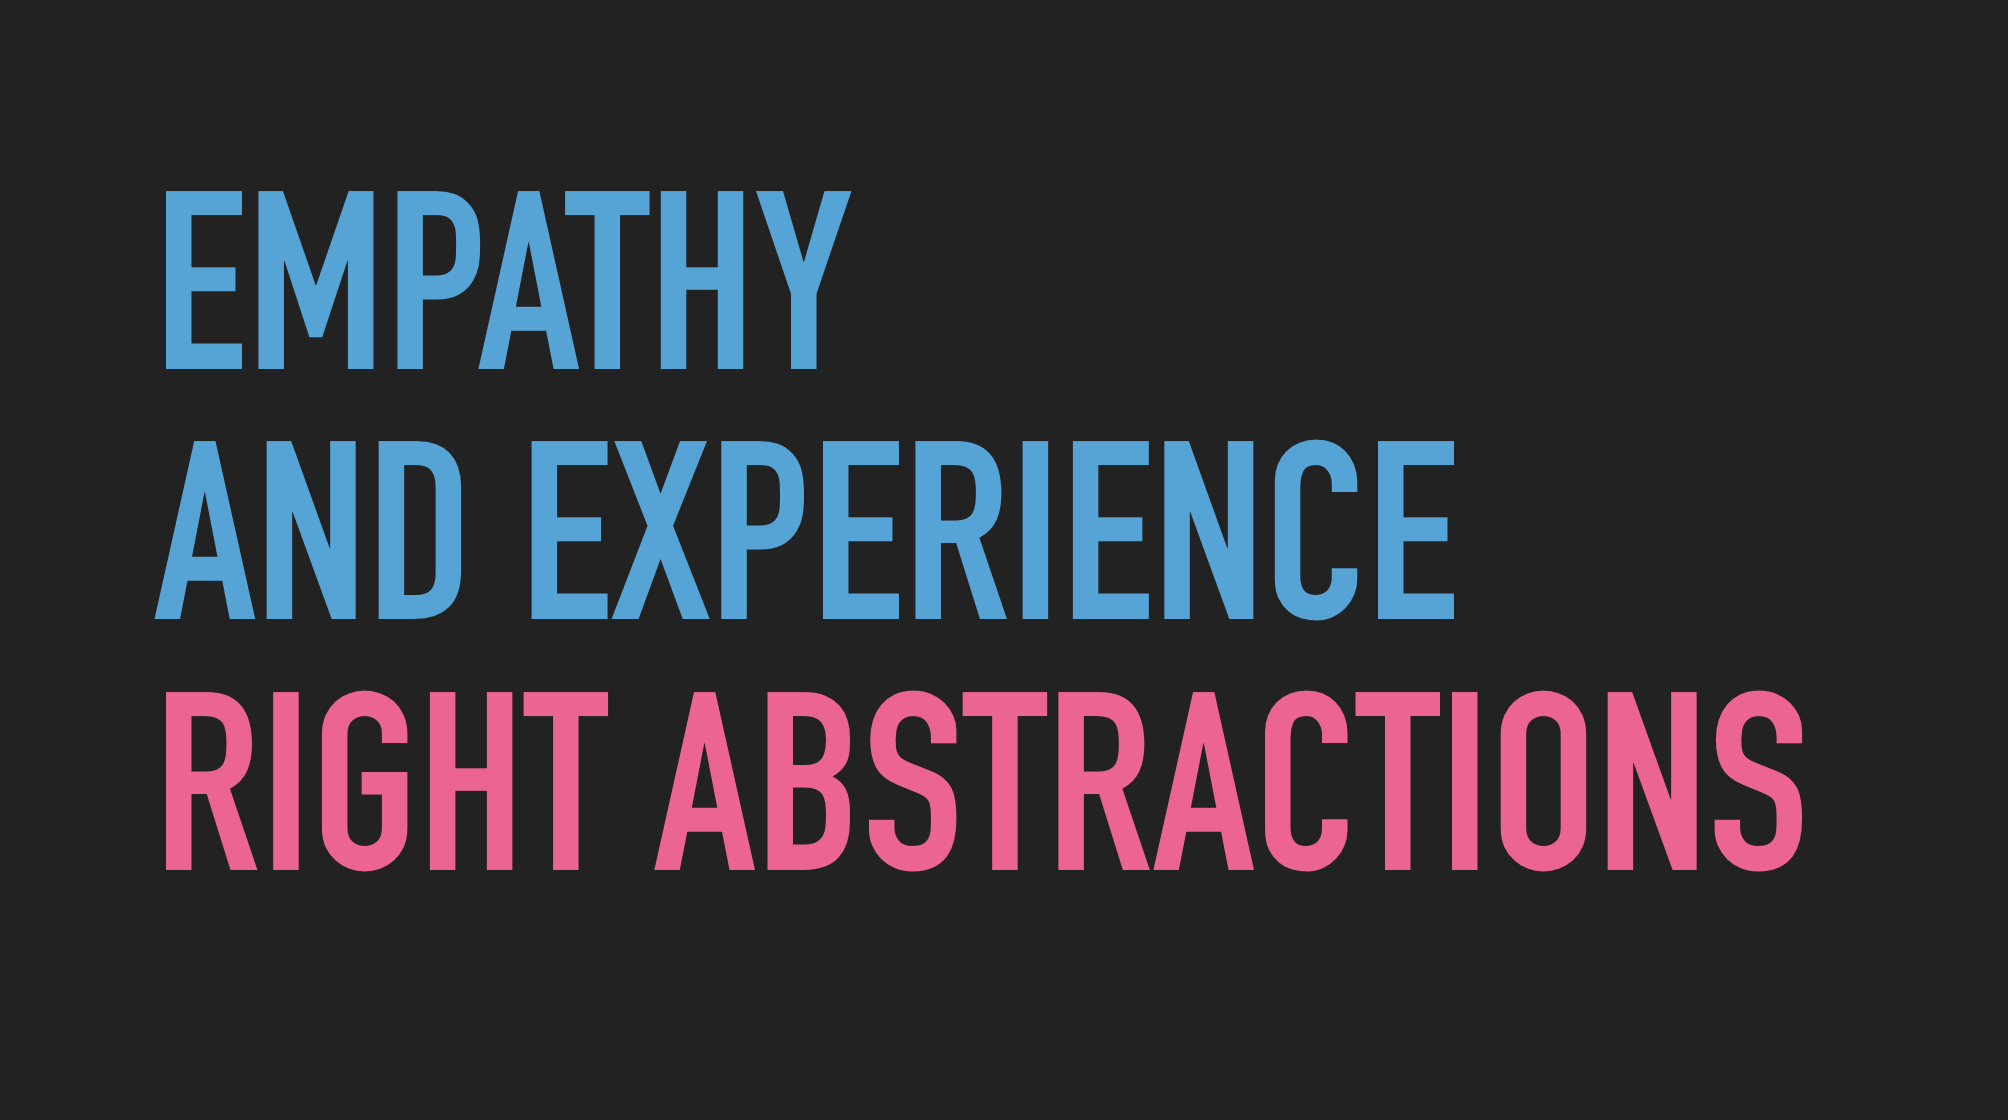 Slide text: Empathy and experience - /> Right abstractions.